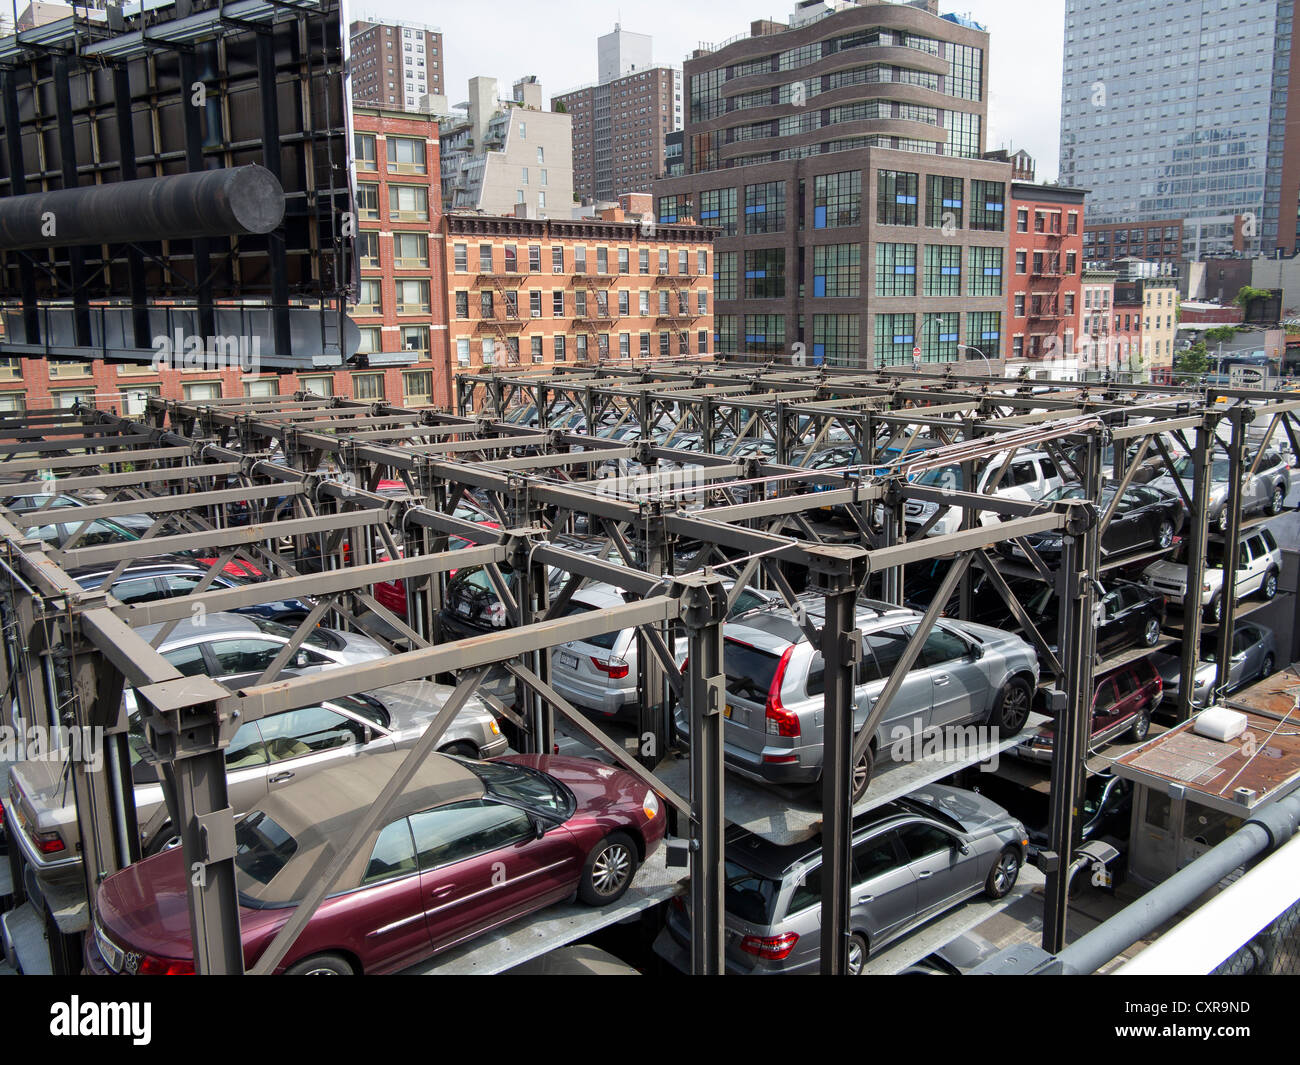 Car Park Stacked Parking Garage Manhattan New York City